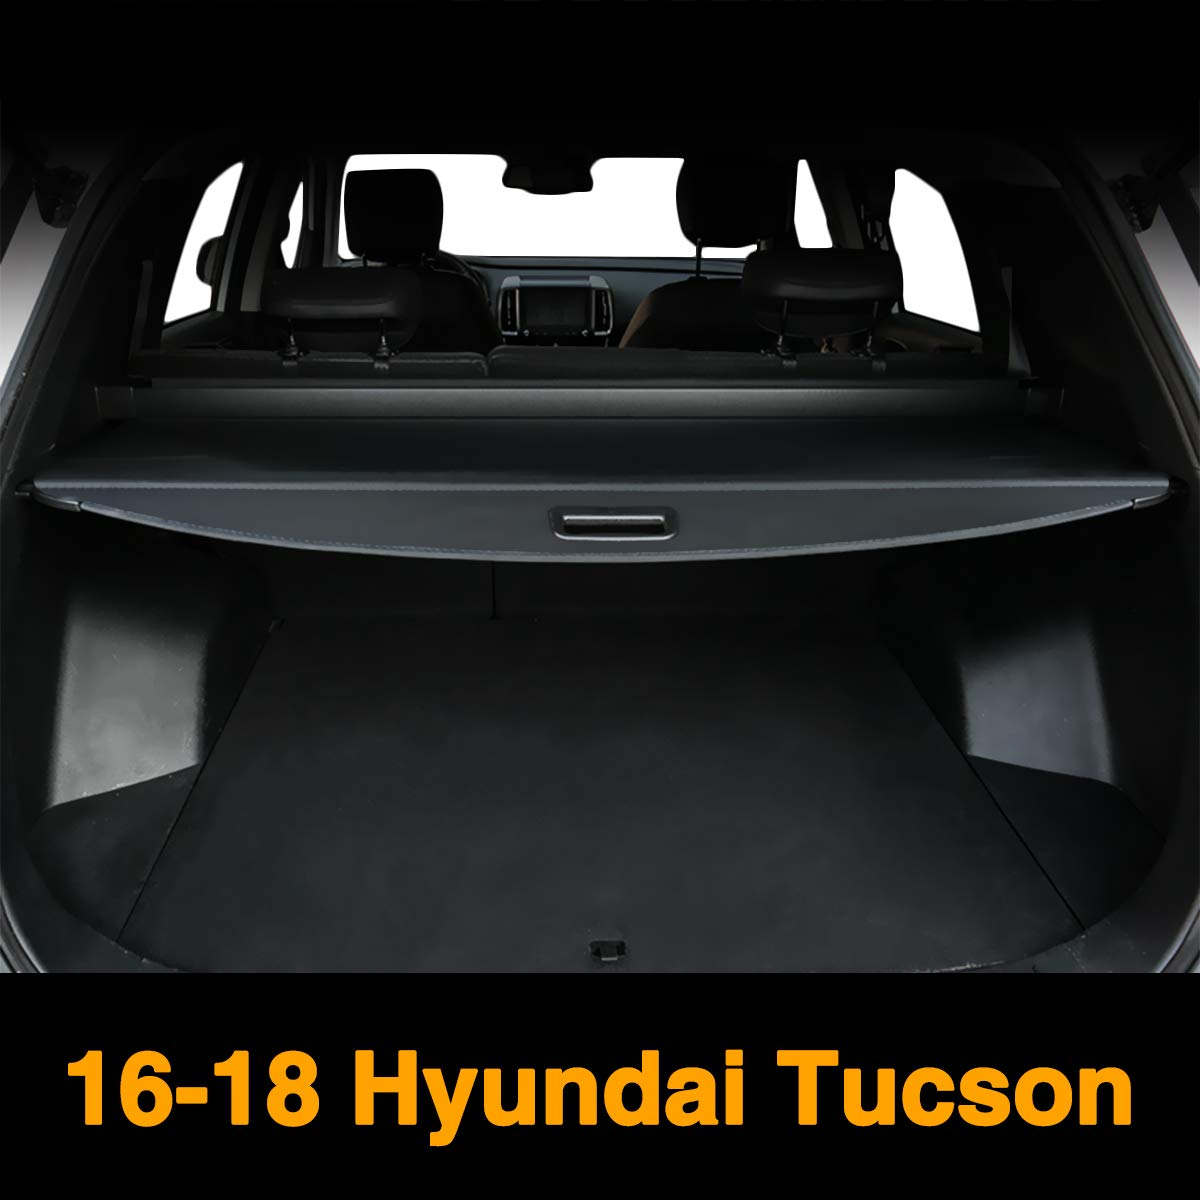 Autoxrun Retractable Black Cargo Cover Luggage Security Rear Trunk Fits 2016-2018 Hyundai Tucson